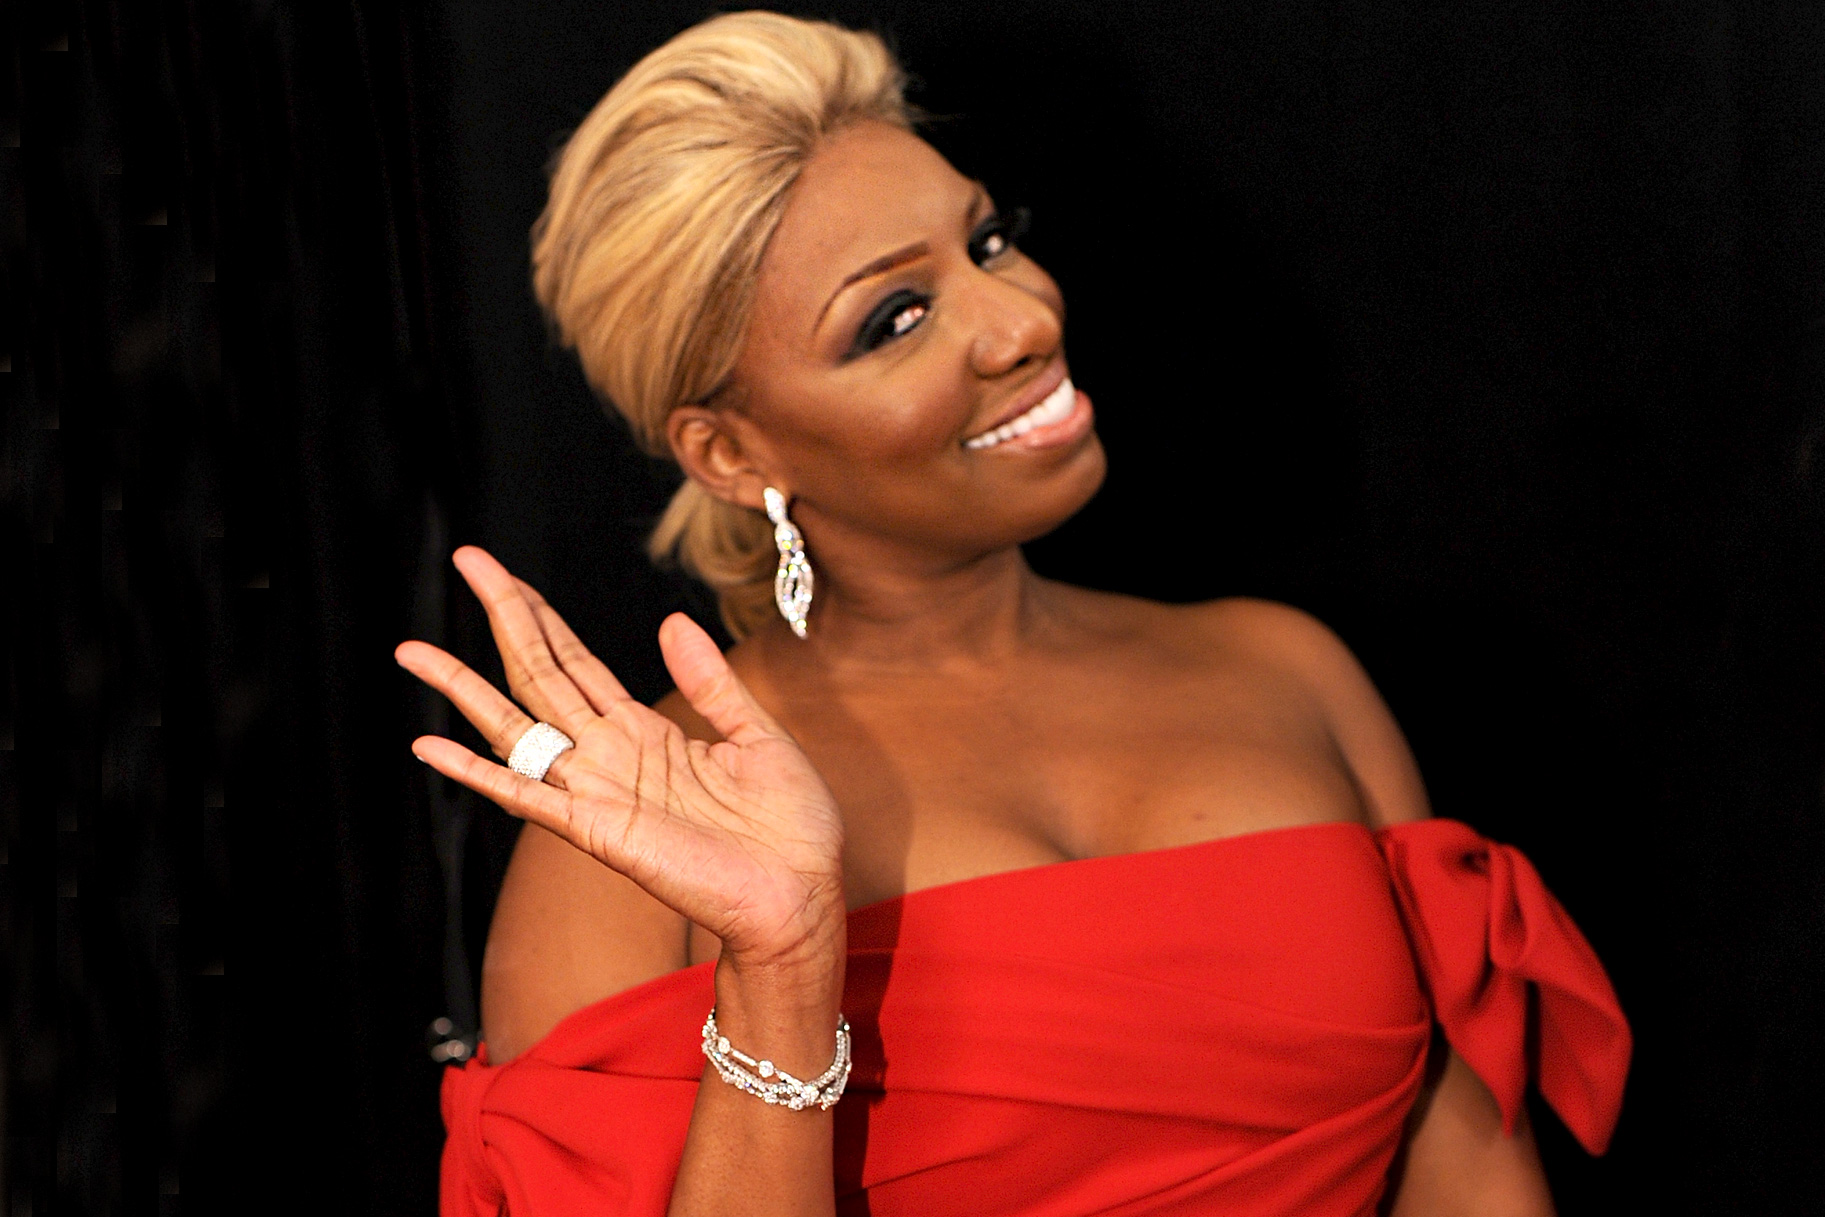 NeNe Leakes' Latest Photos Ahead Of Her New Year's Eve Event Have Fans Praising Her Looks